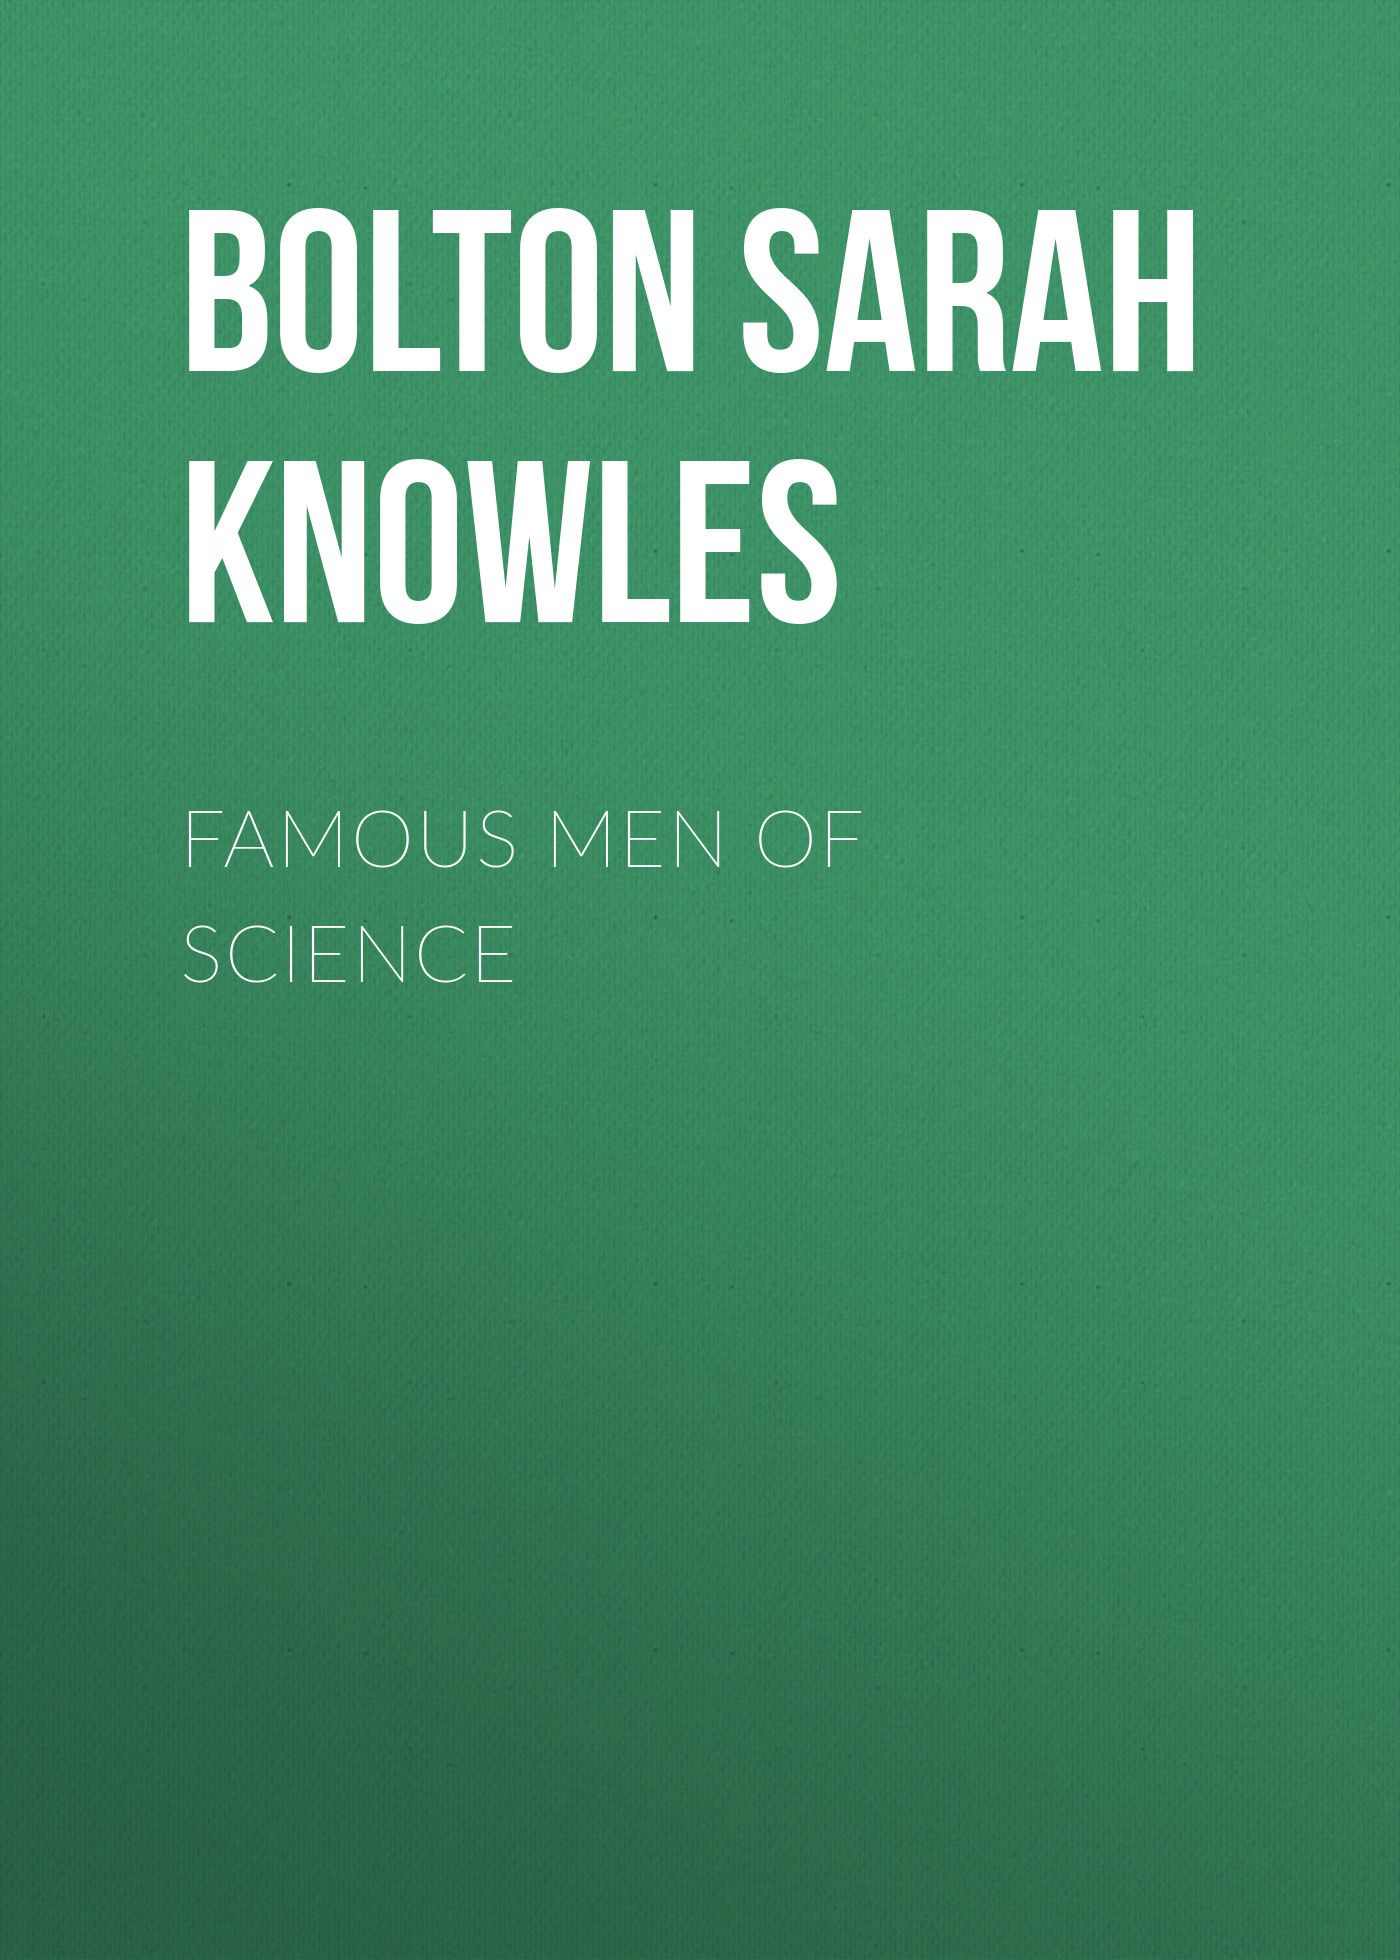 цены Bolton Sarah Knowles Famous Men of Science